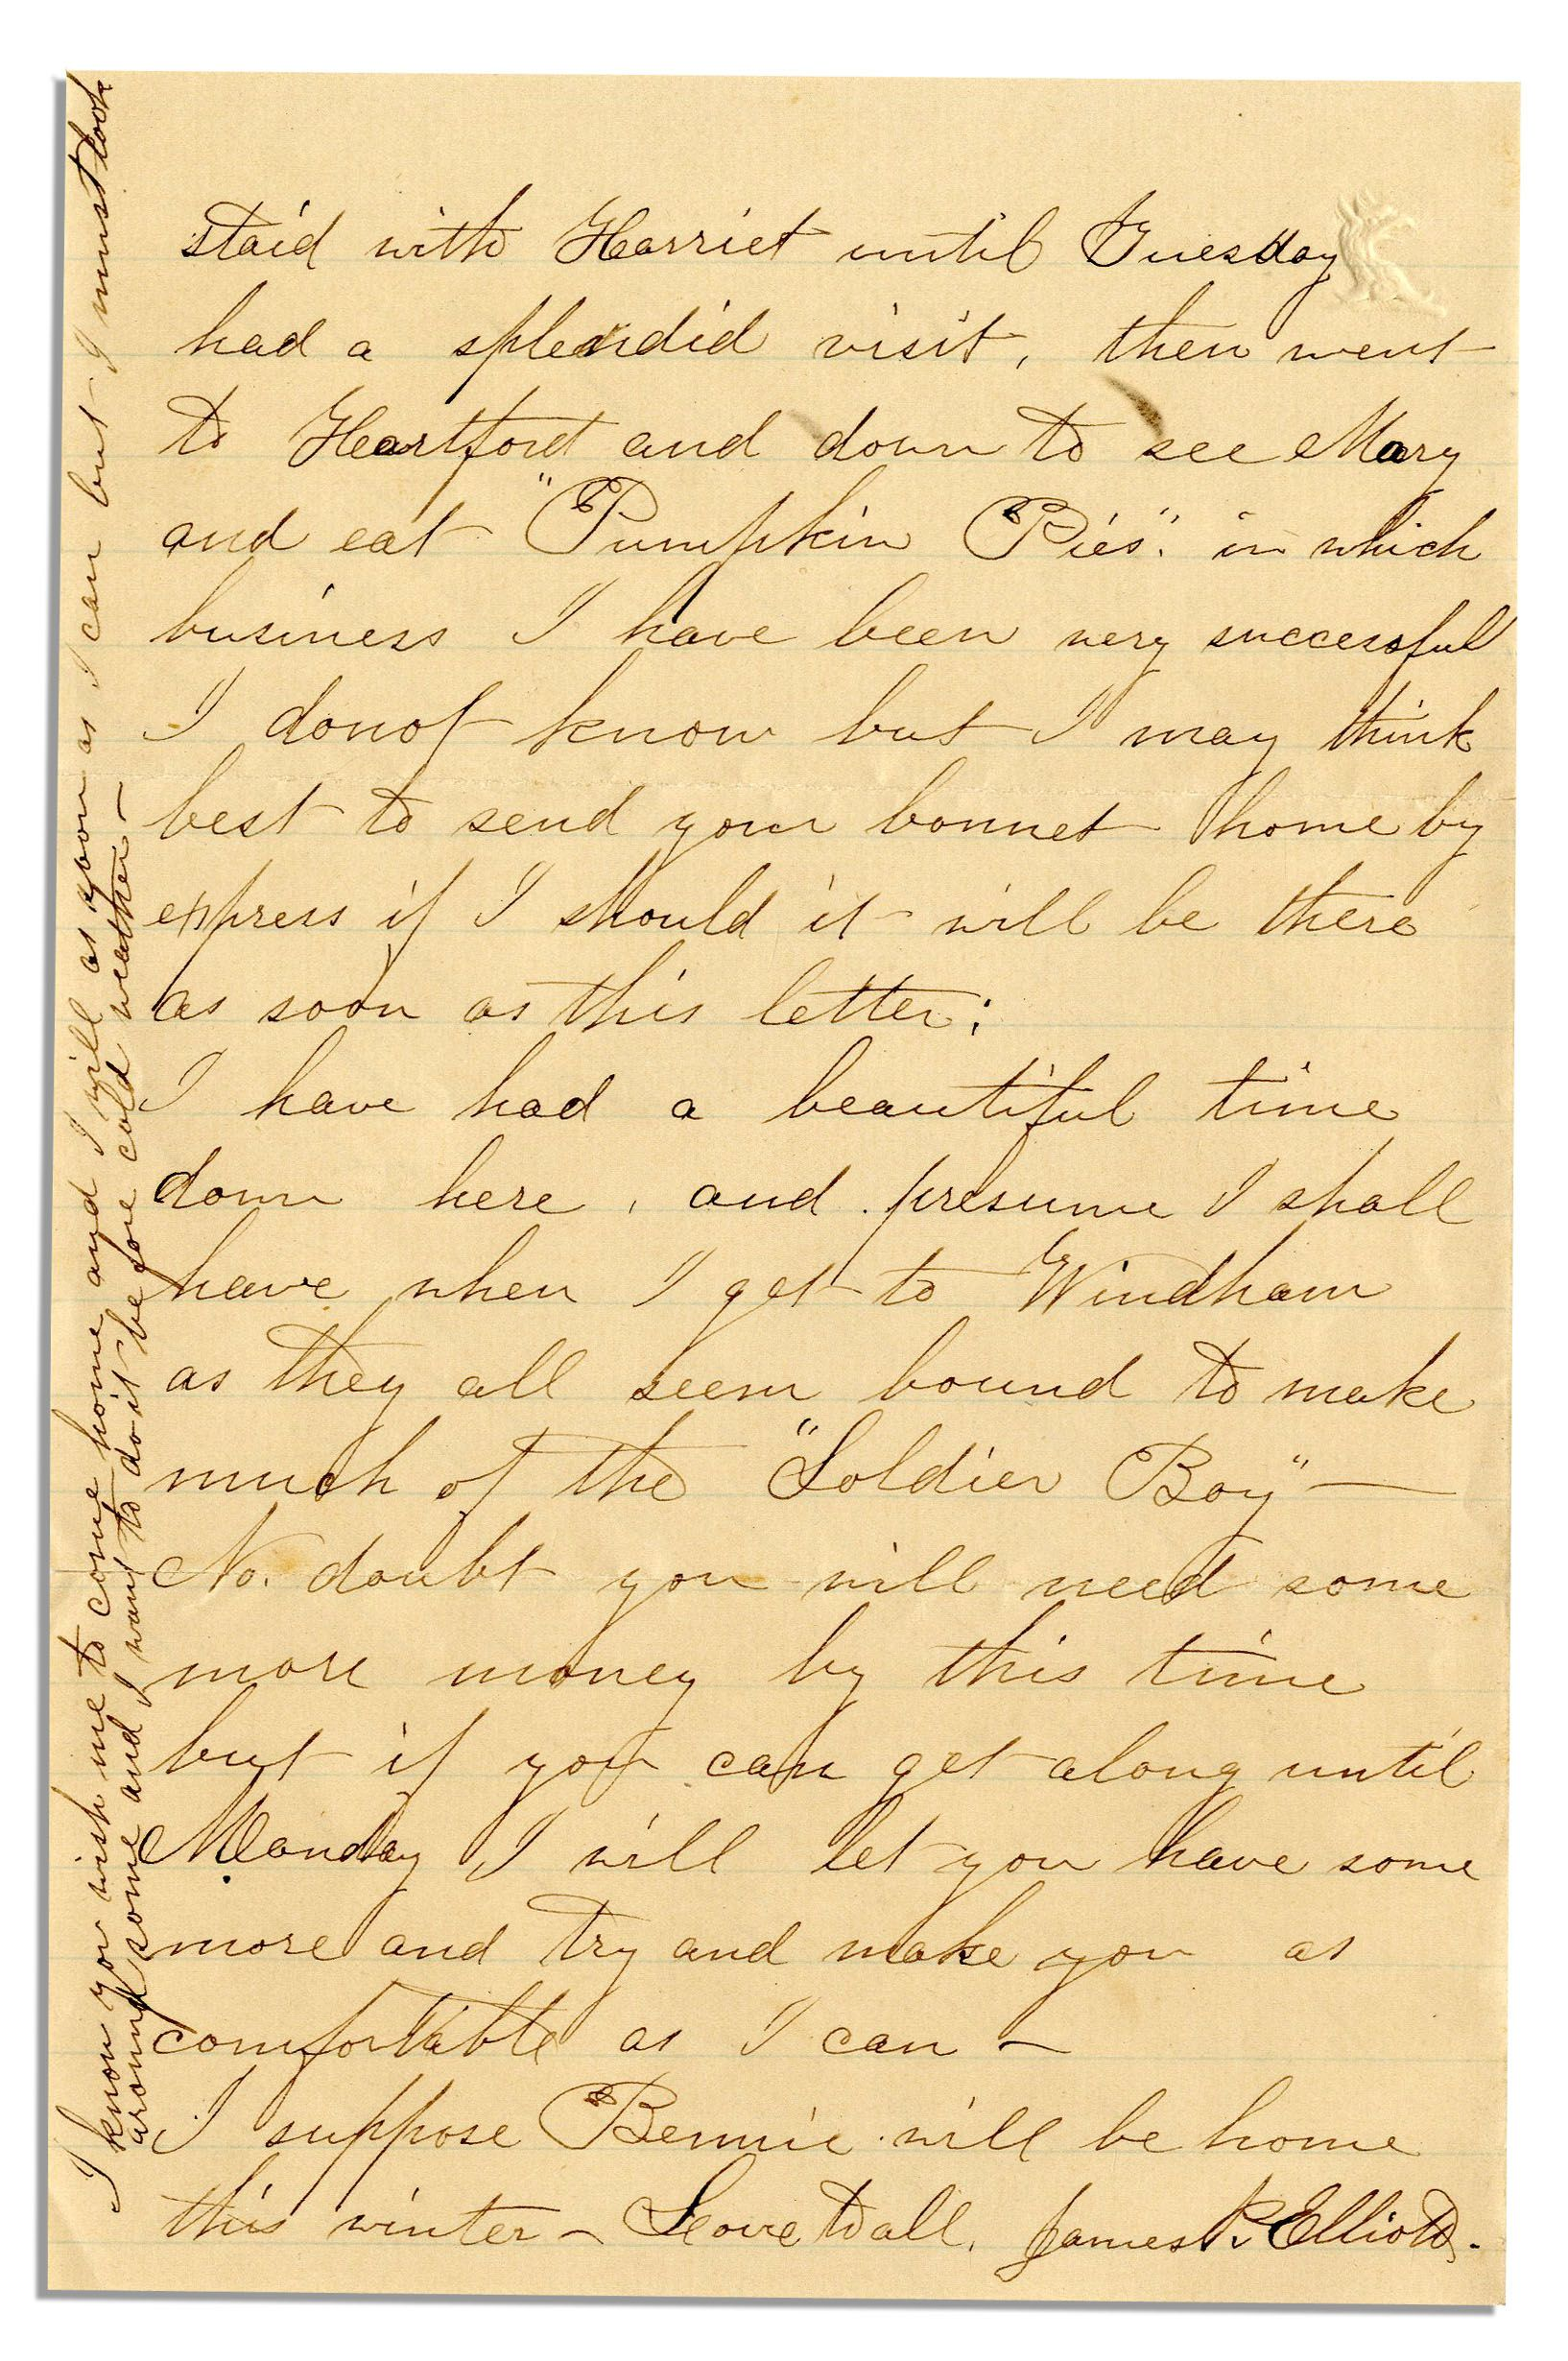 civil war letter by 1st ct heavy artilleryman they